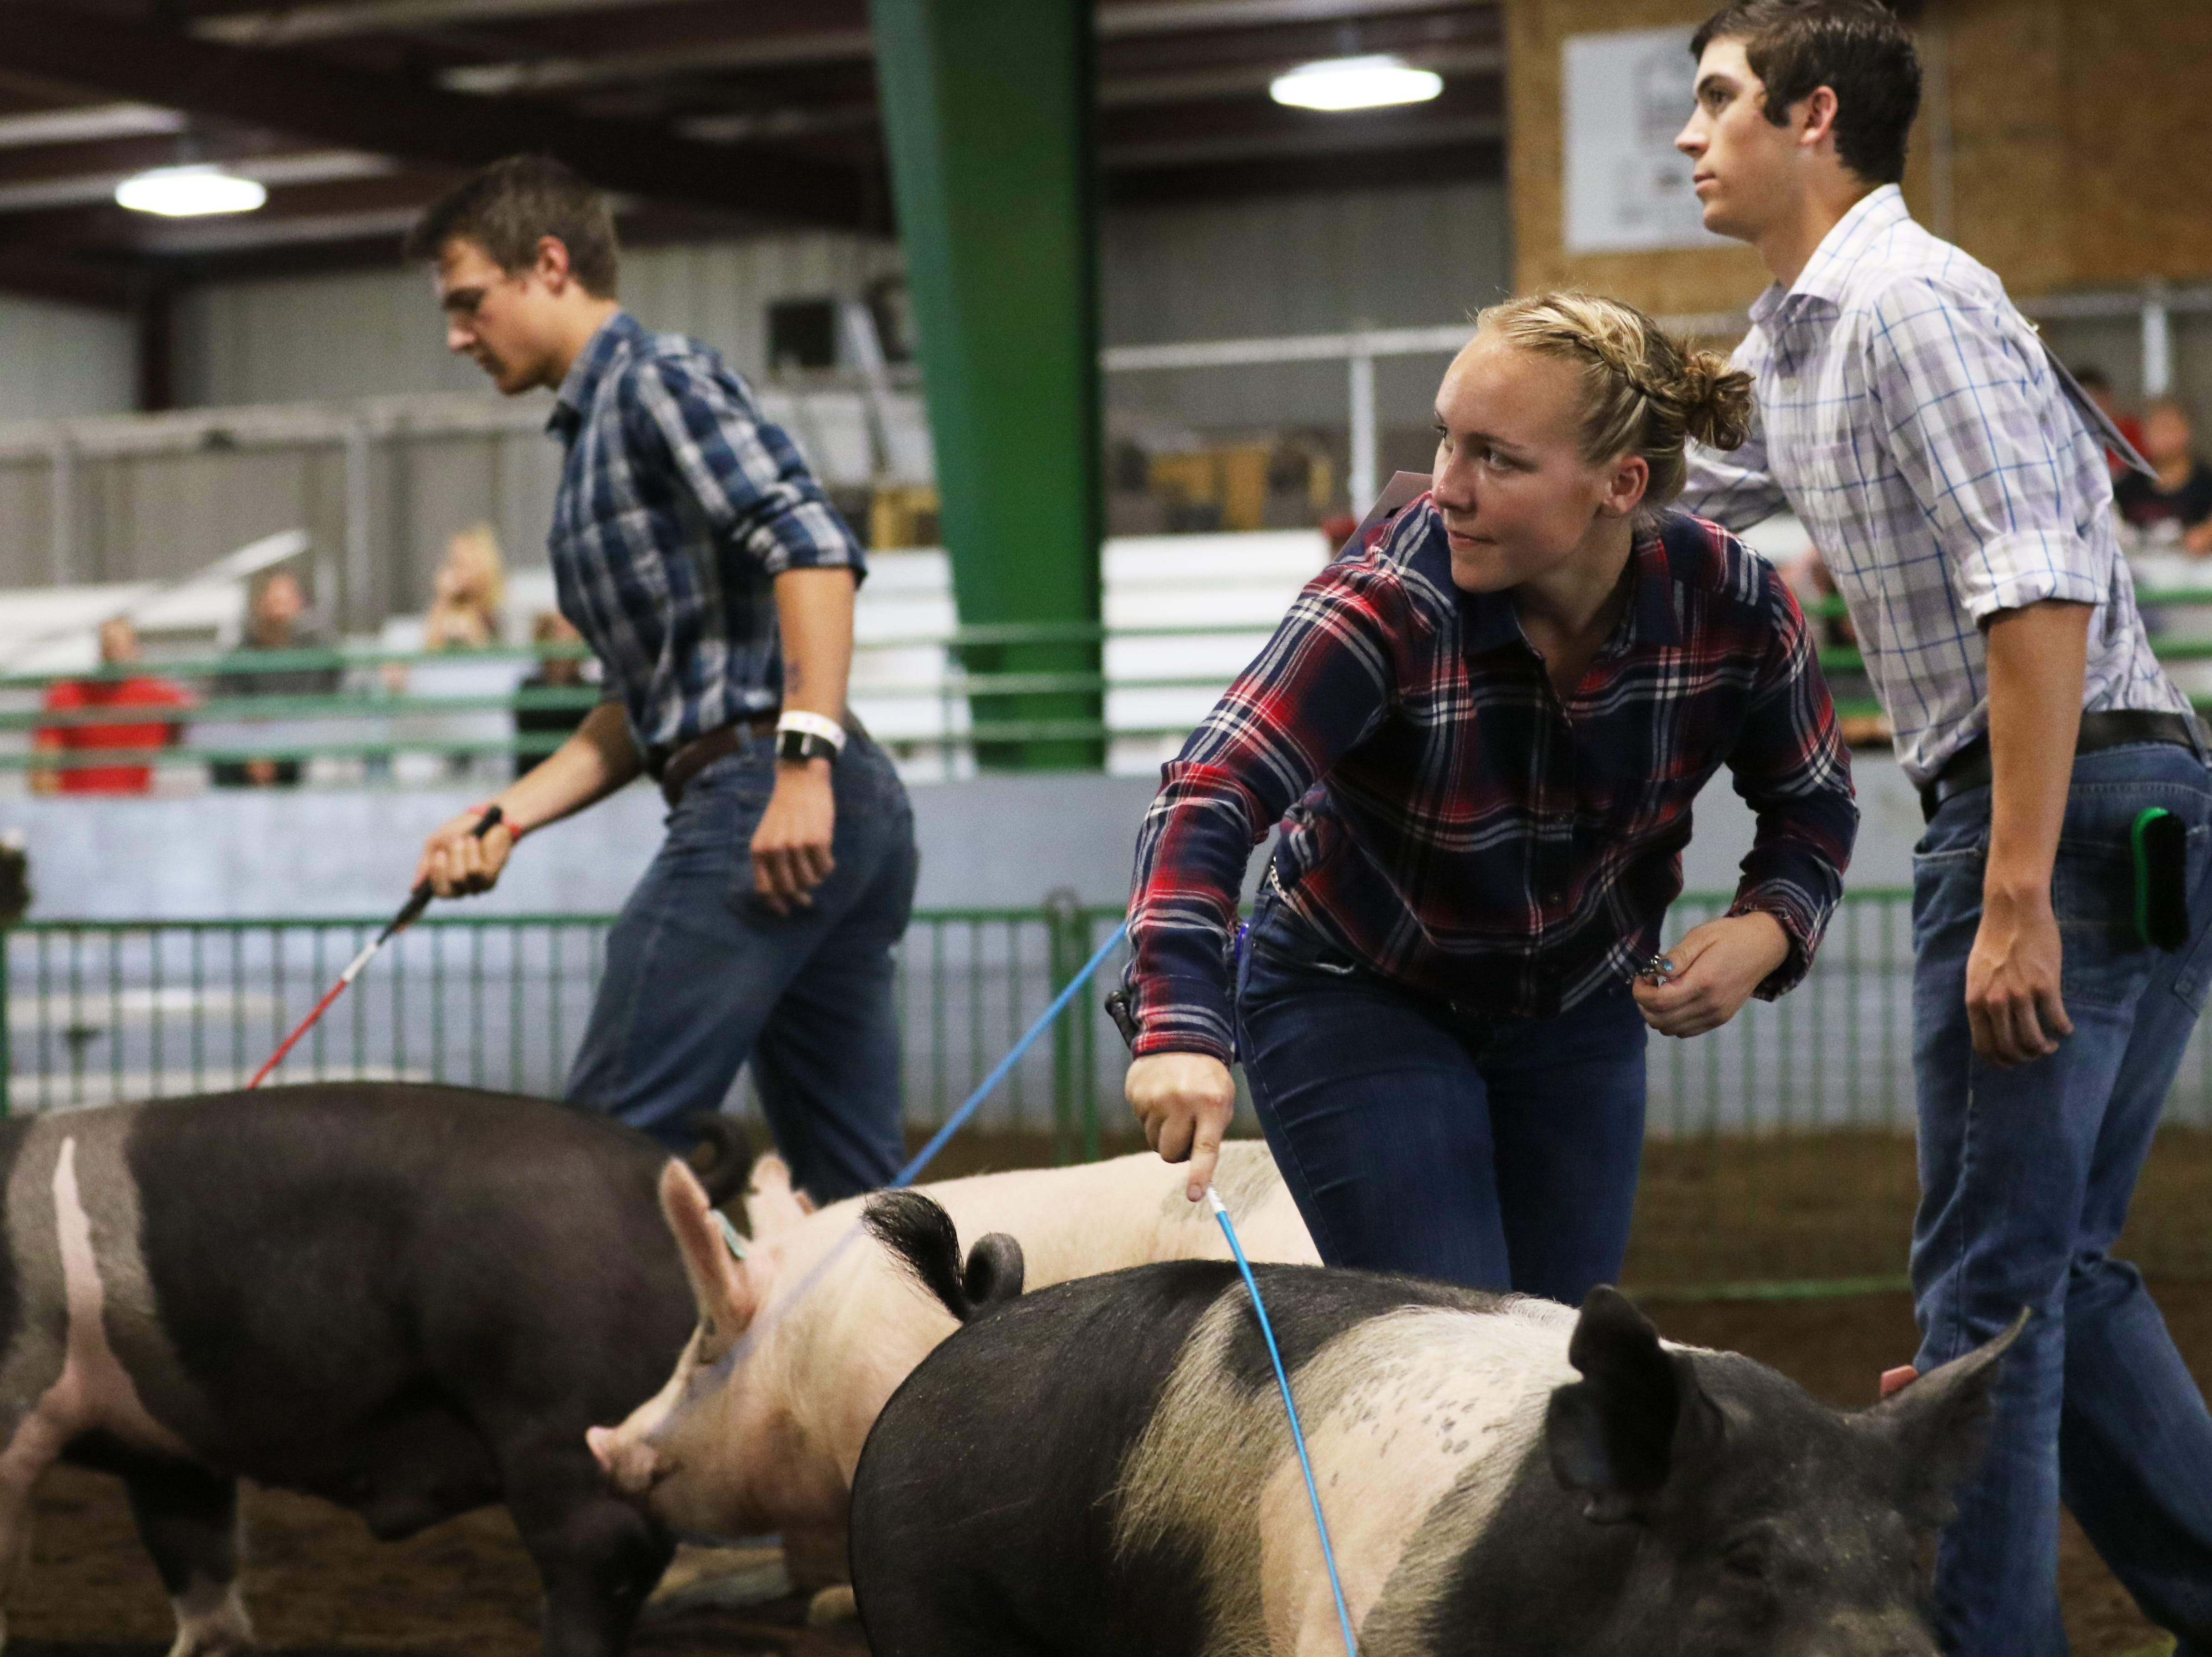 Sydney Zinkon shows a hog during the Showman of Showmen at the Coshocton County Fair on Wednesday.